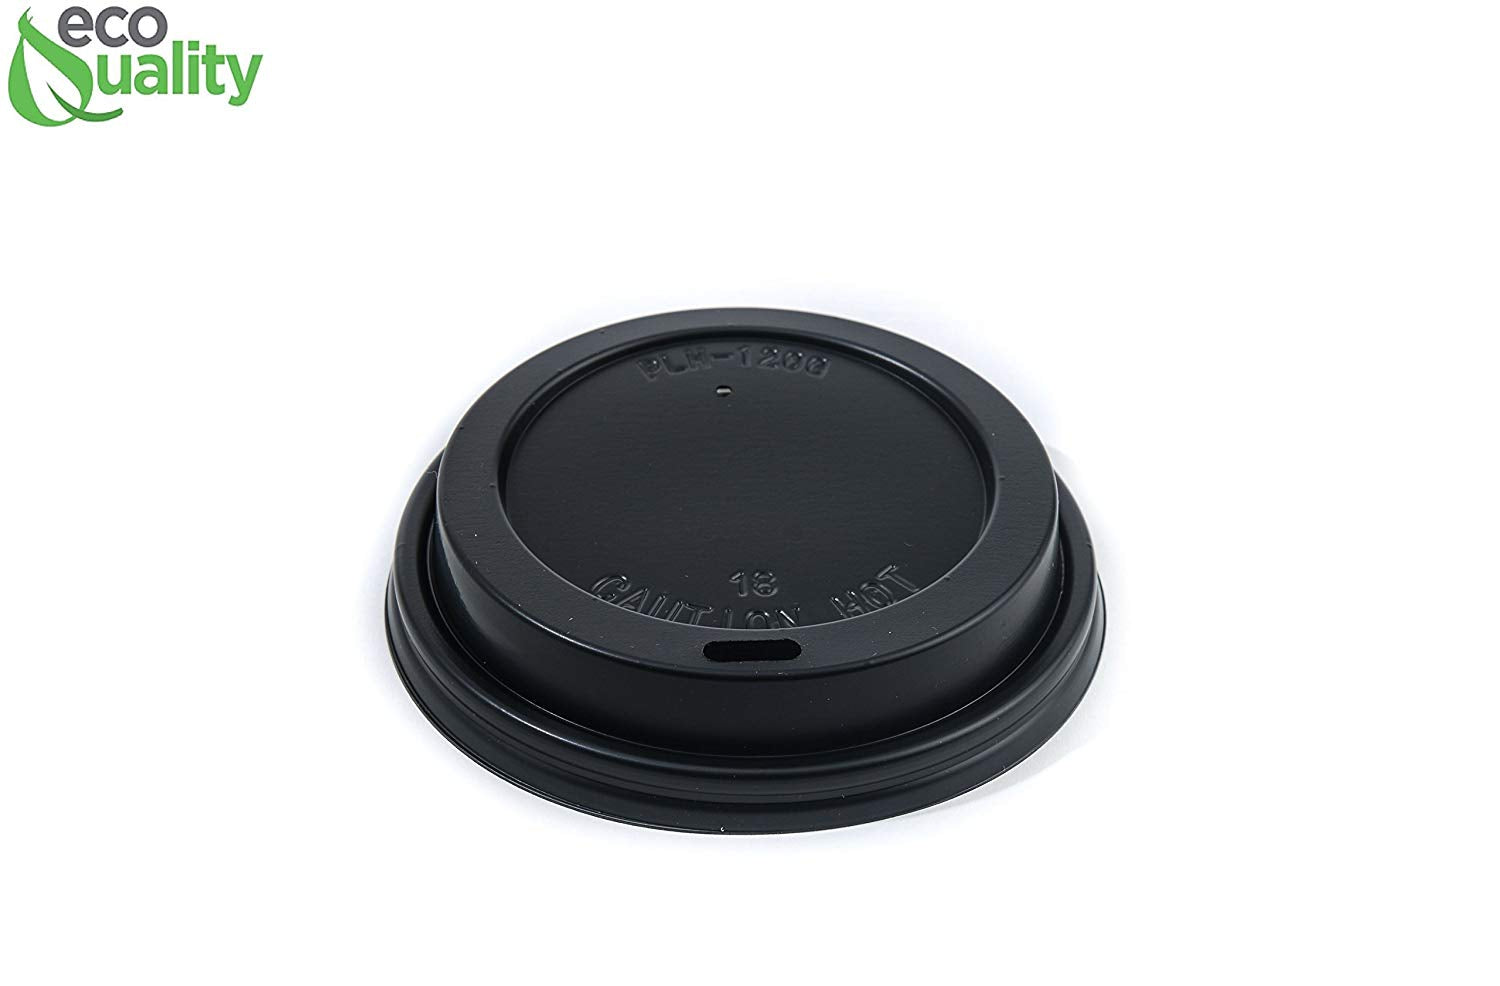 1000 Pack - 10 oz Disposable White Paper Coffee Cups with Black Dome Lids and Protective Corrugated Cup Sleeves